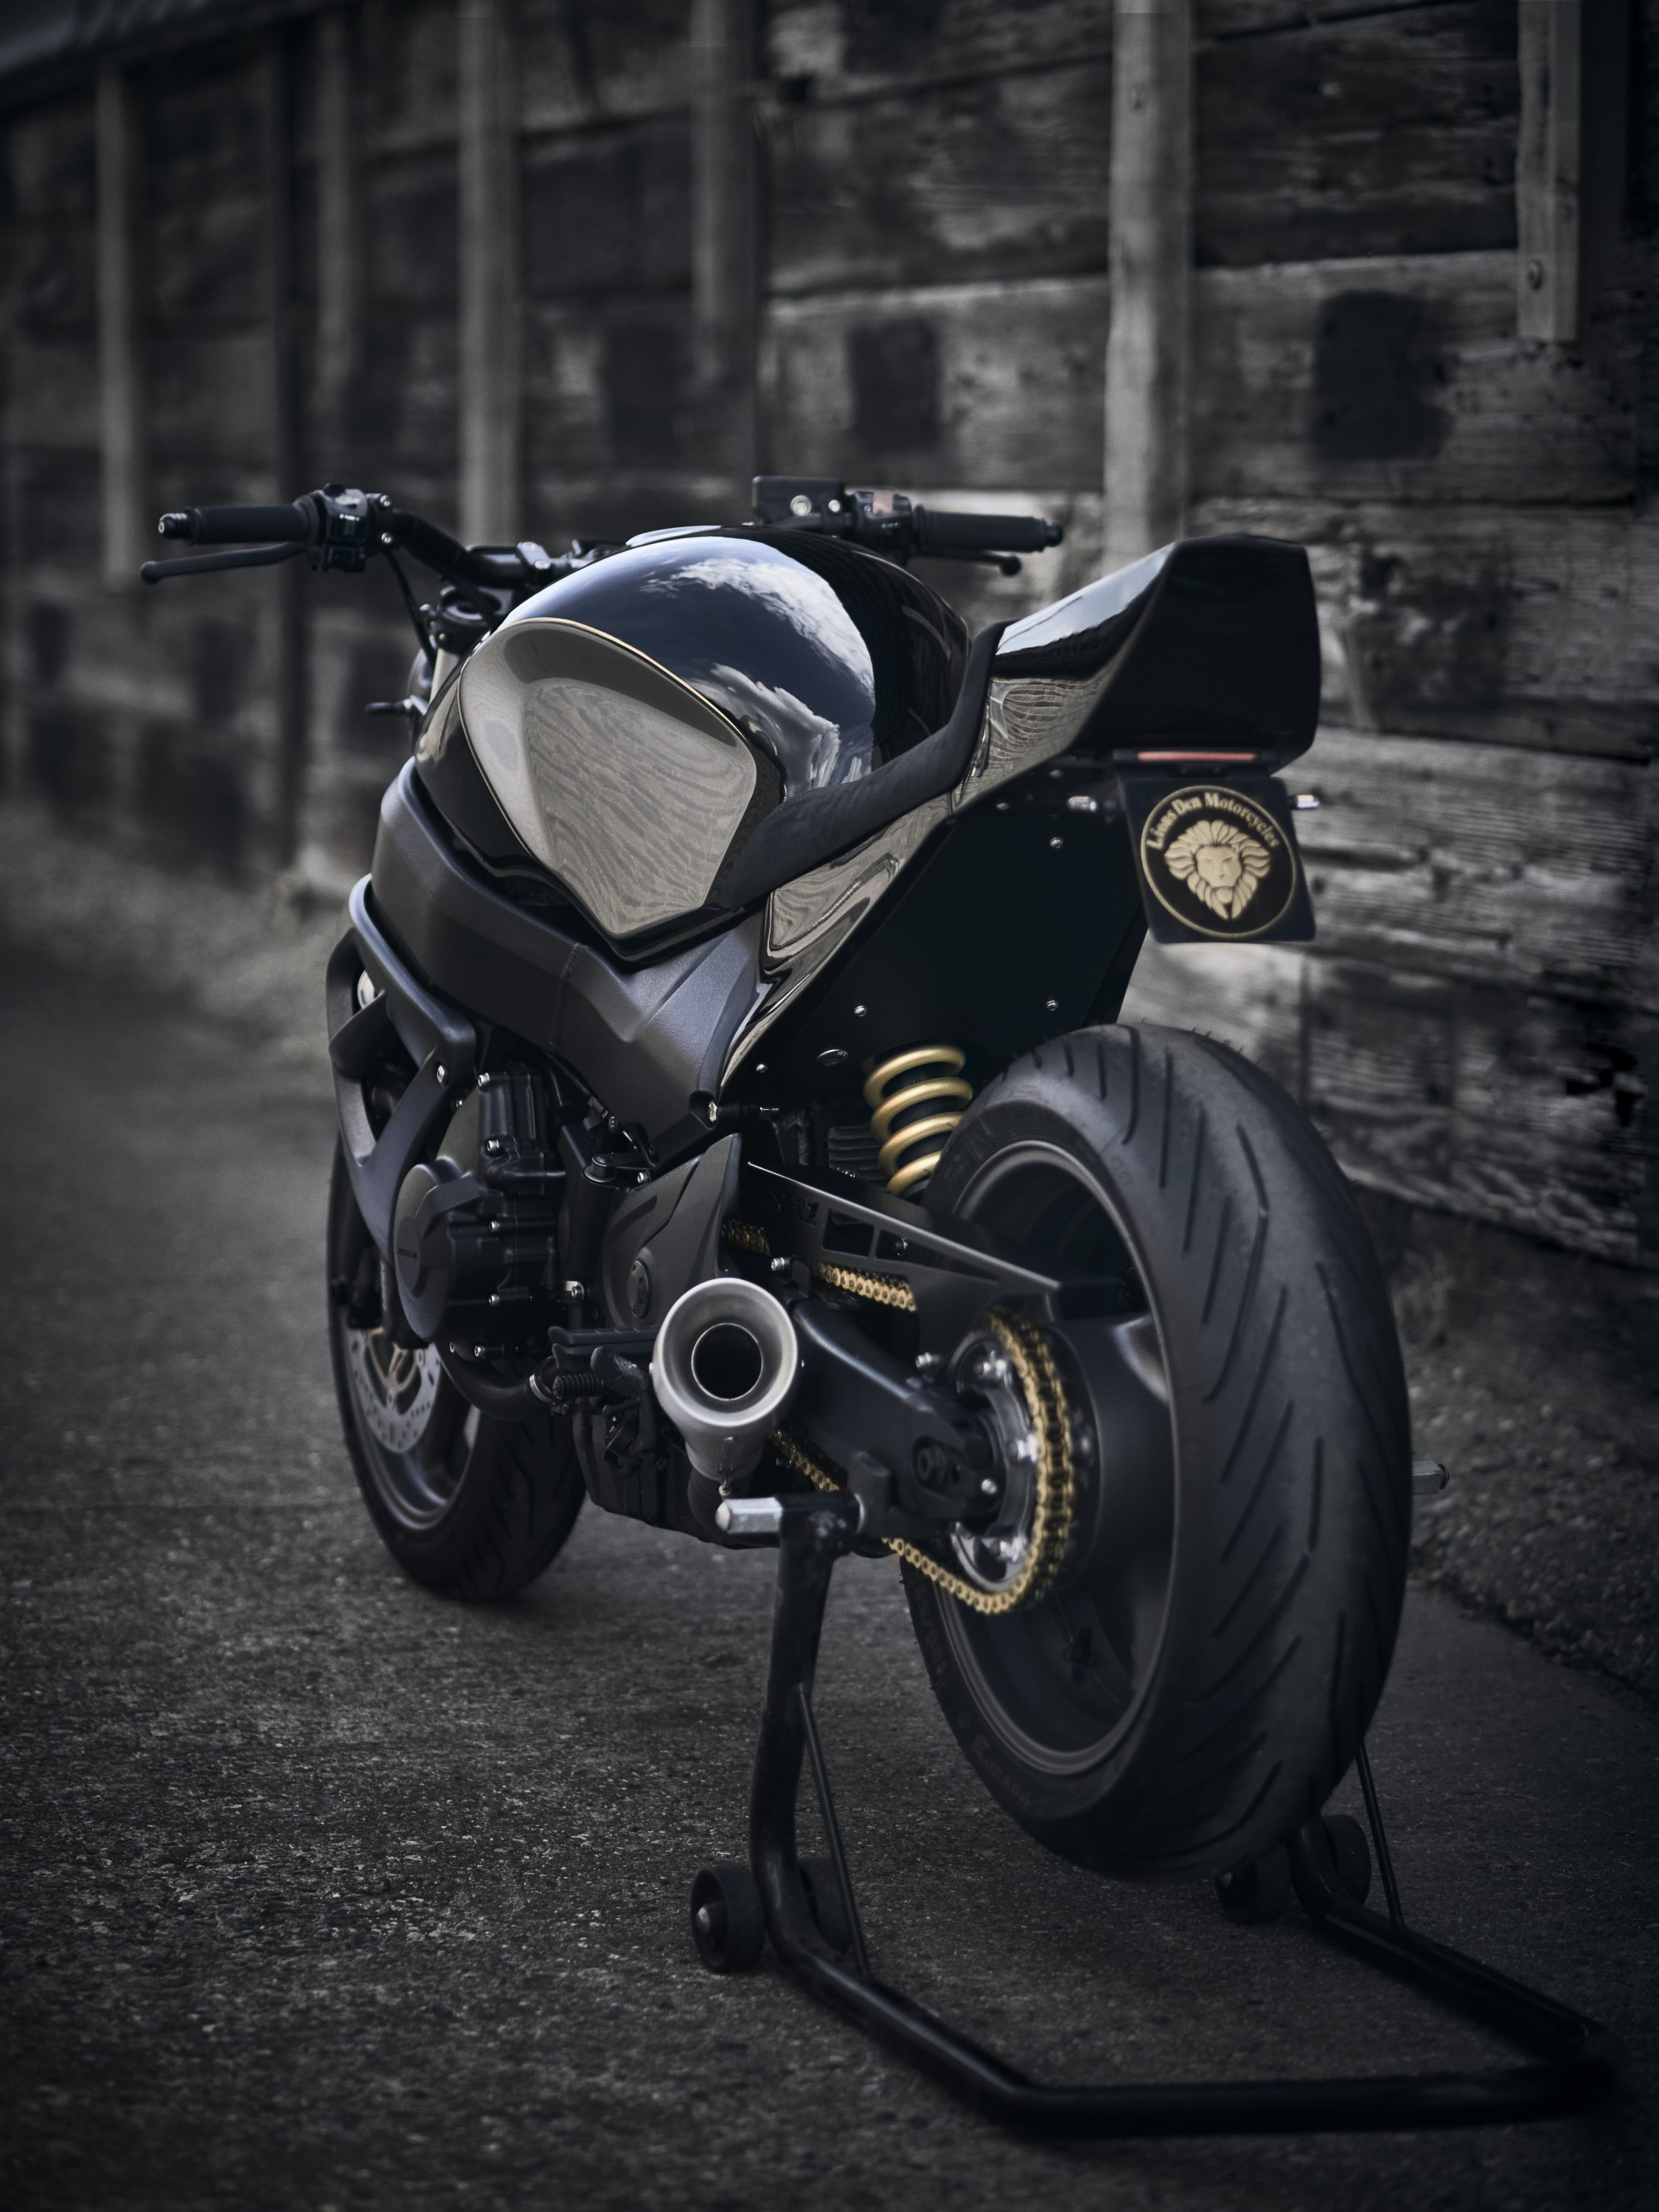 Motorcycle Featured Image